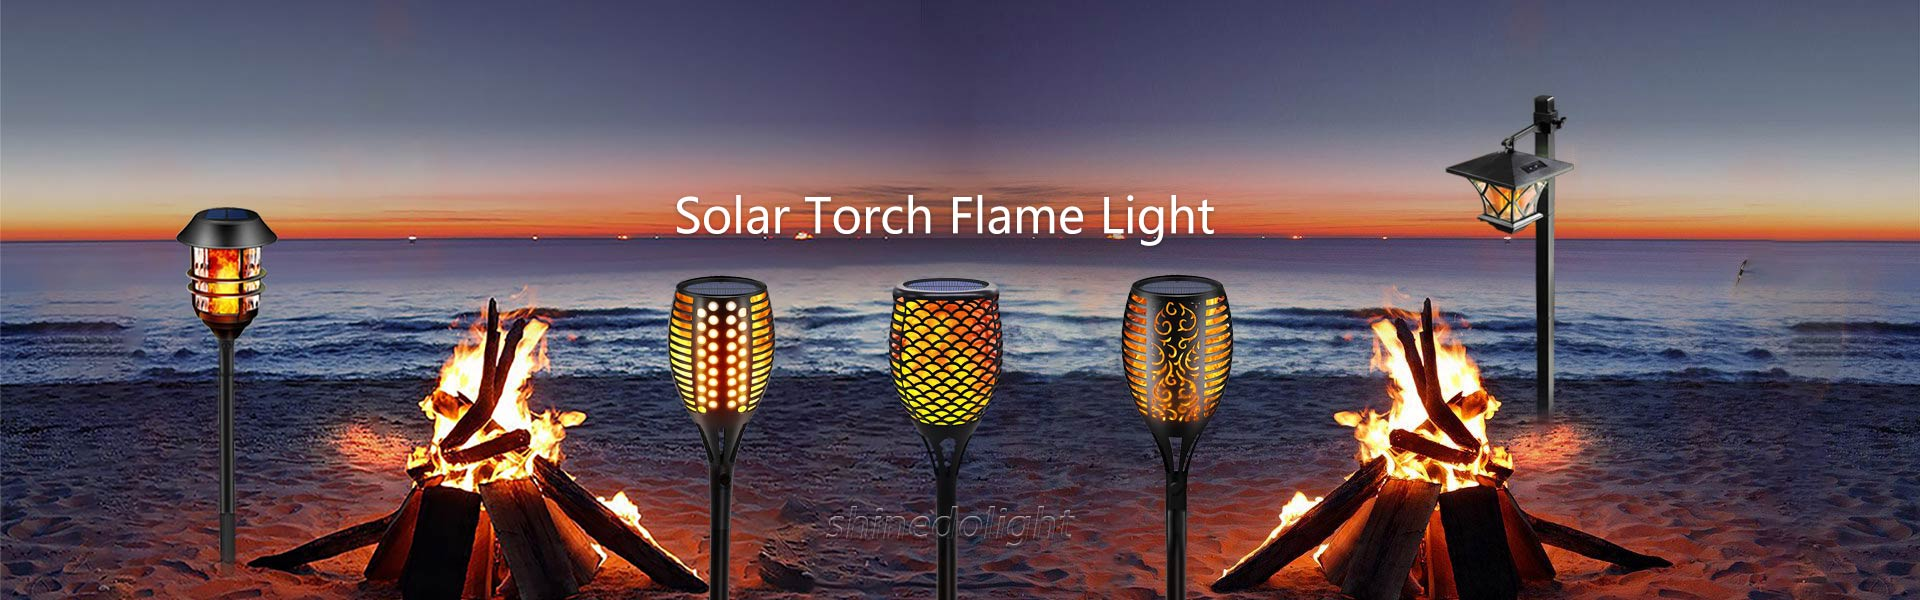 Solar Torch Flame Light Factory China